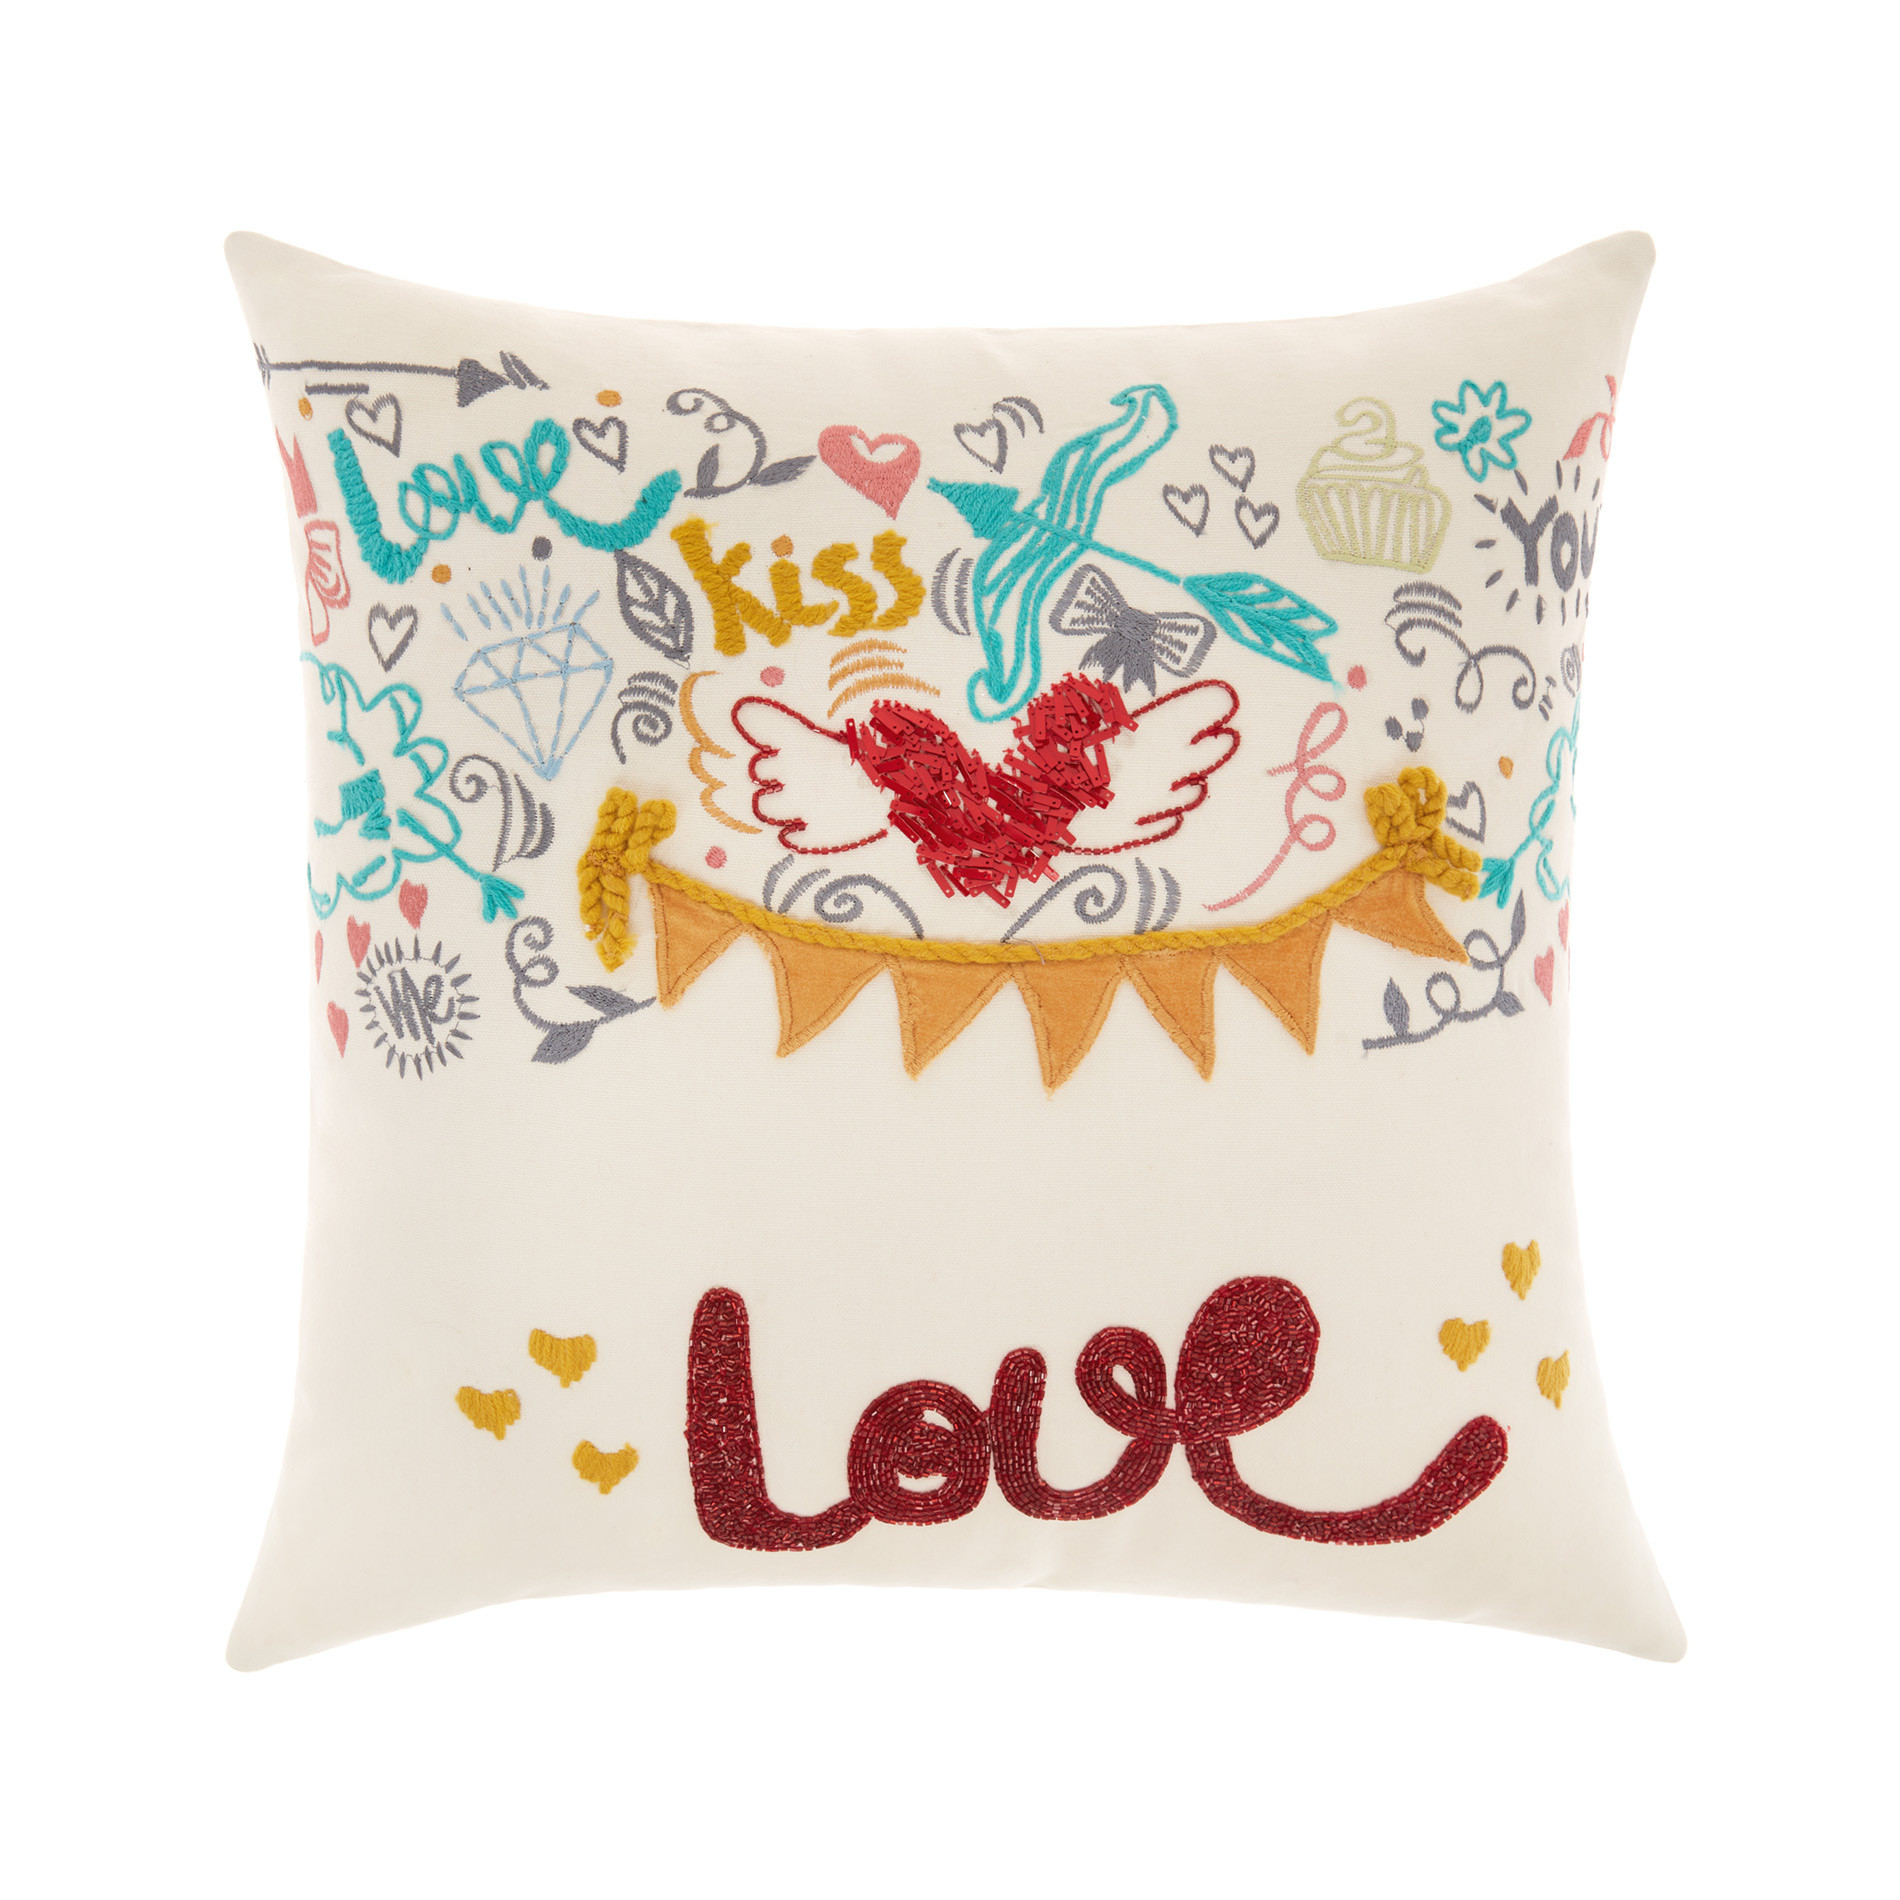 Cuscino Love con ricami 45x45cm, Bianco, large image number 0